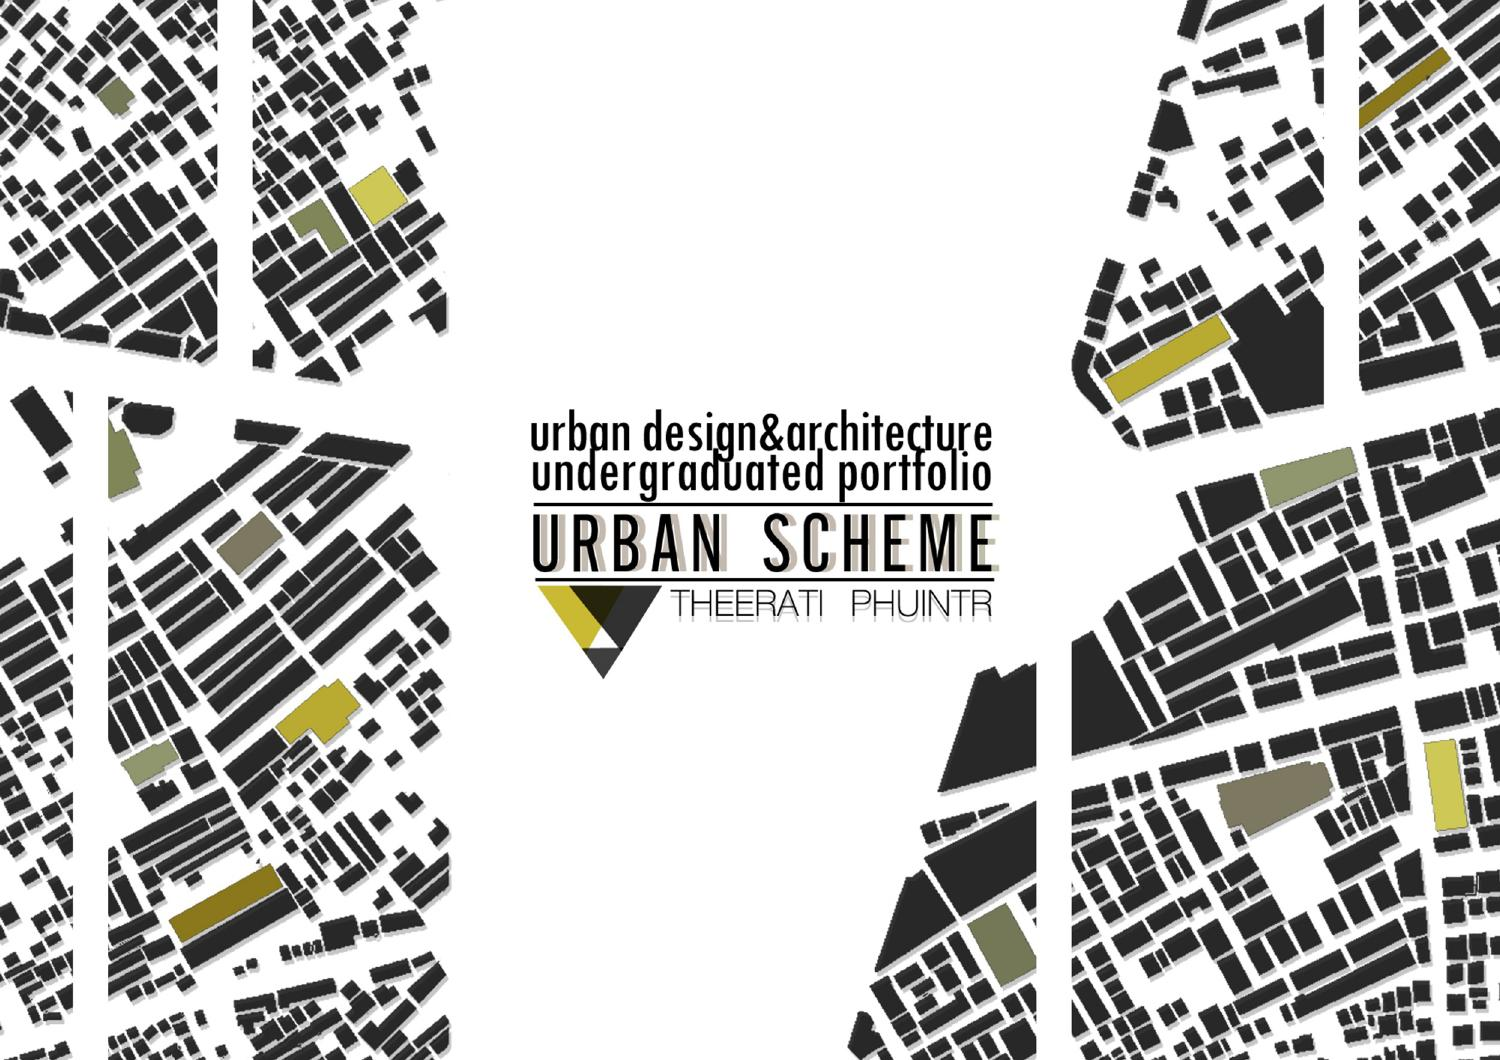 Theerati_l_portfolio_urban_scheme on Letter P Sheet